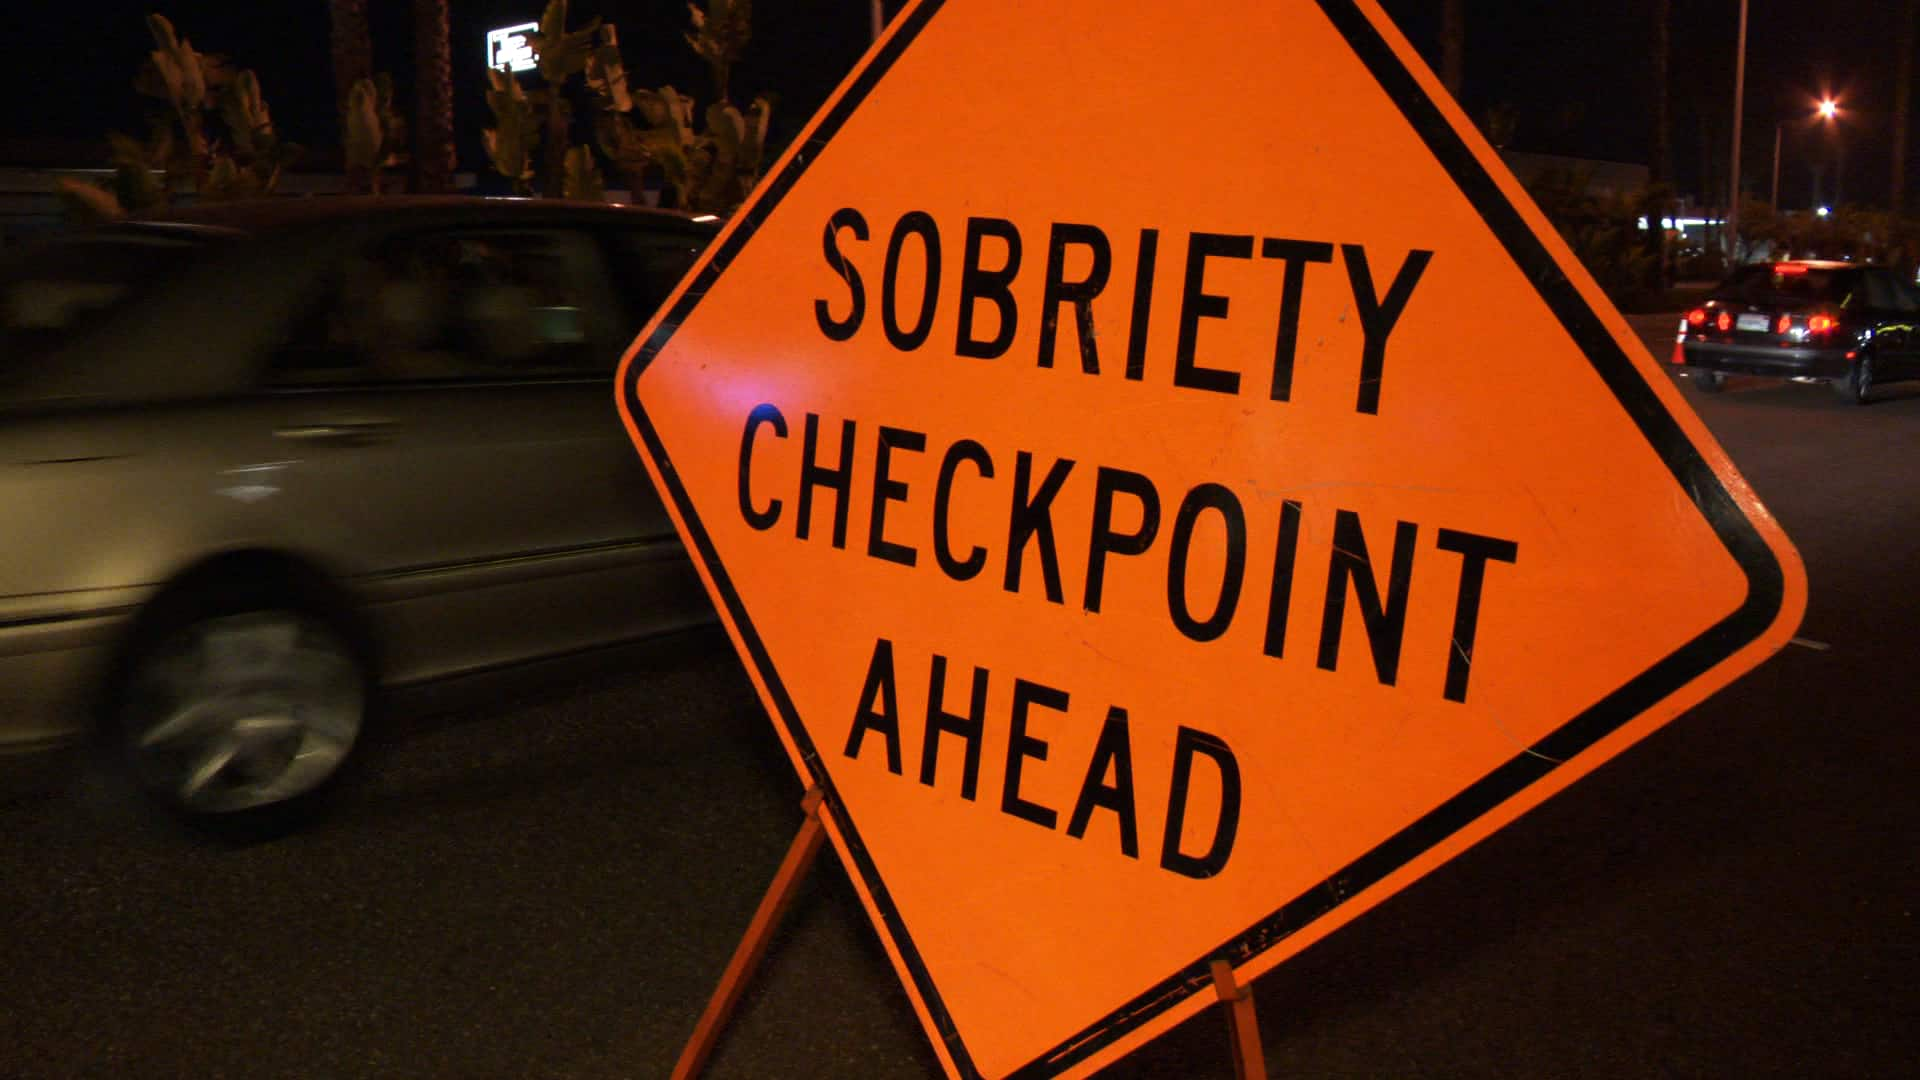 Colorado, sobriety, attorney, dui, legal, lawyer, sr22, non-owner, non-driver, without a car, checkpoint, rehab